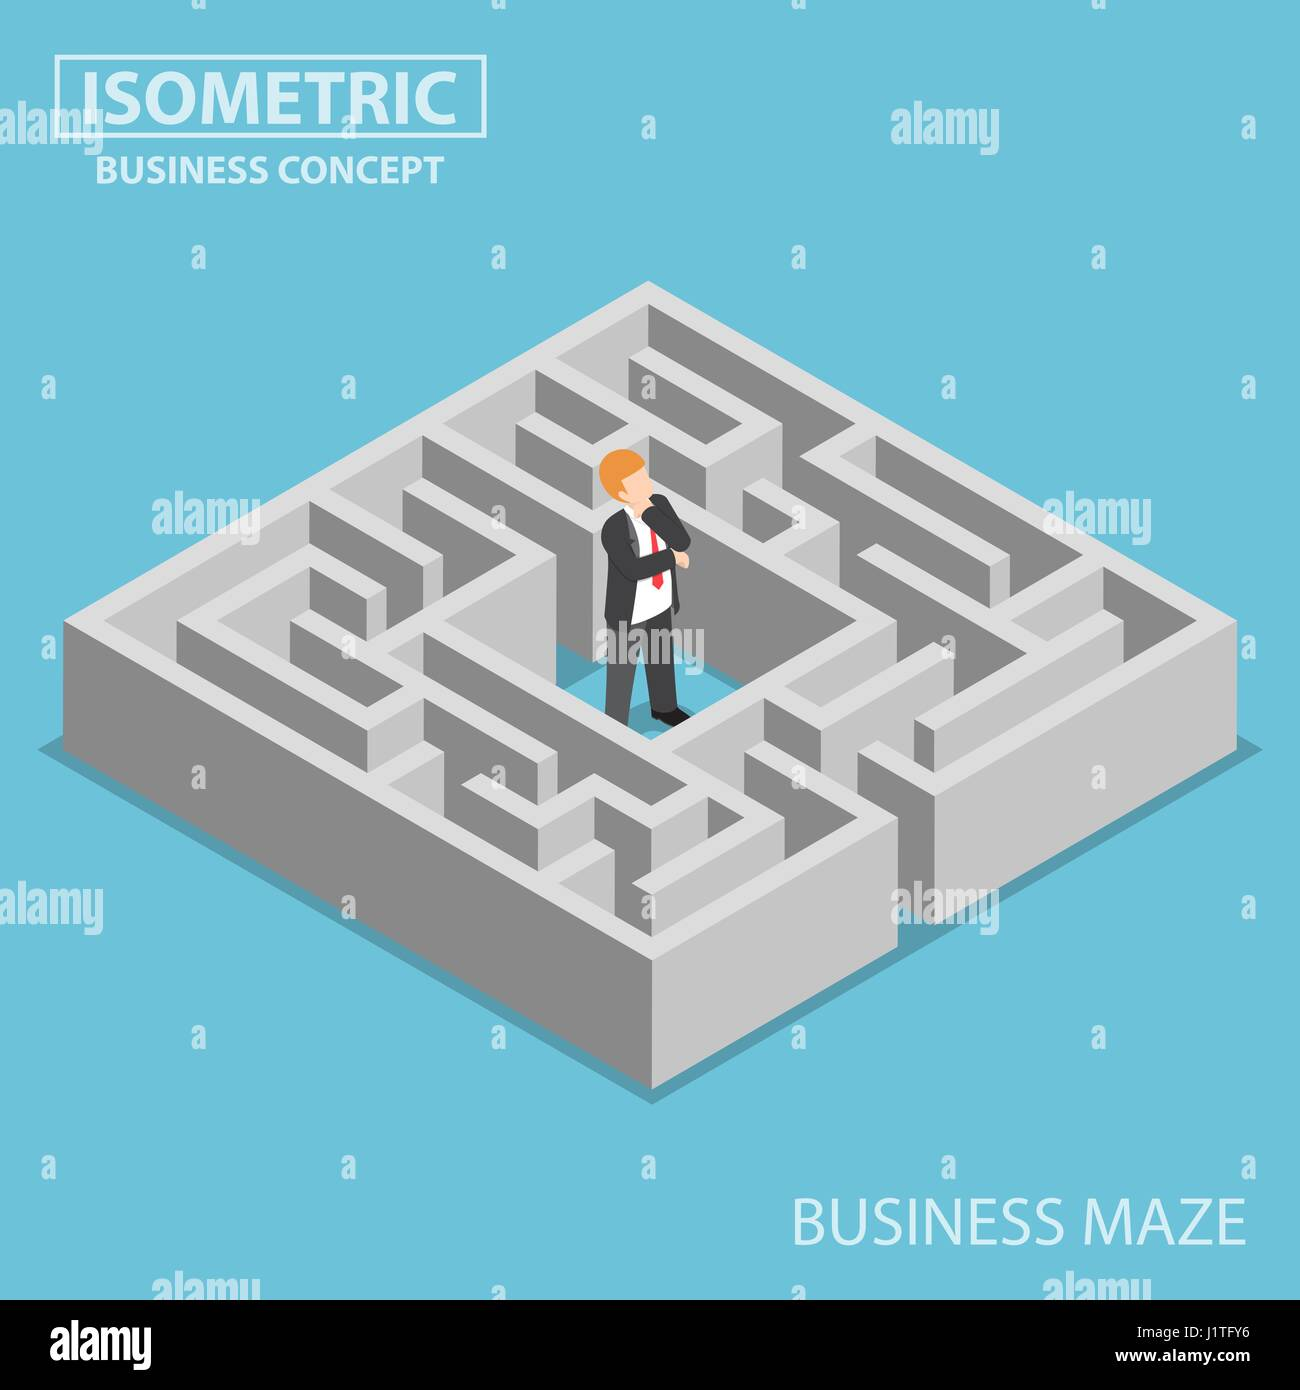 Flat 3d isometric confused businessman stuck in a maze, finding a